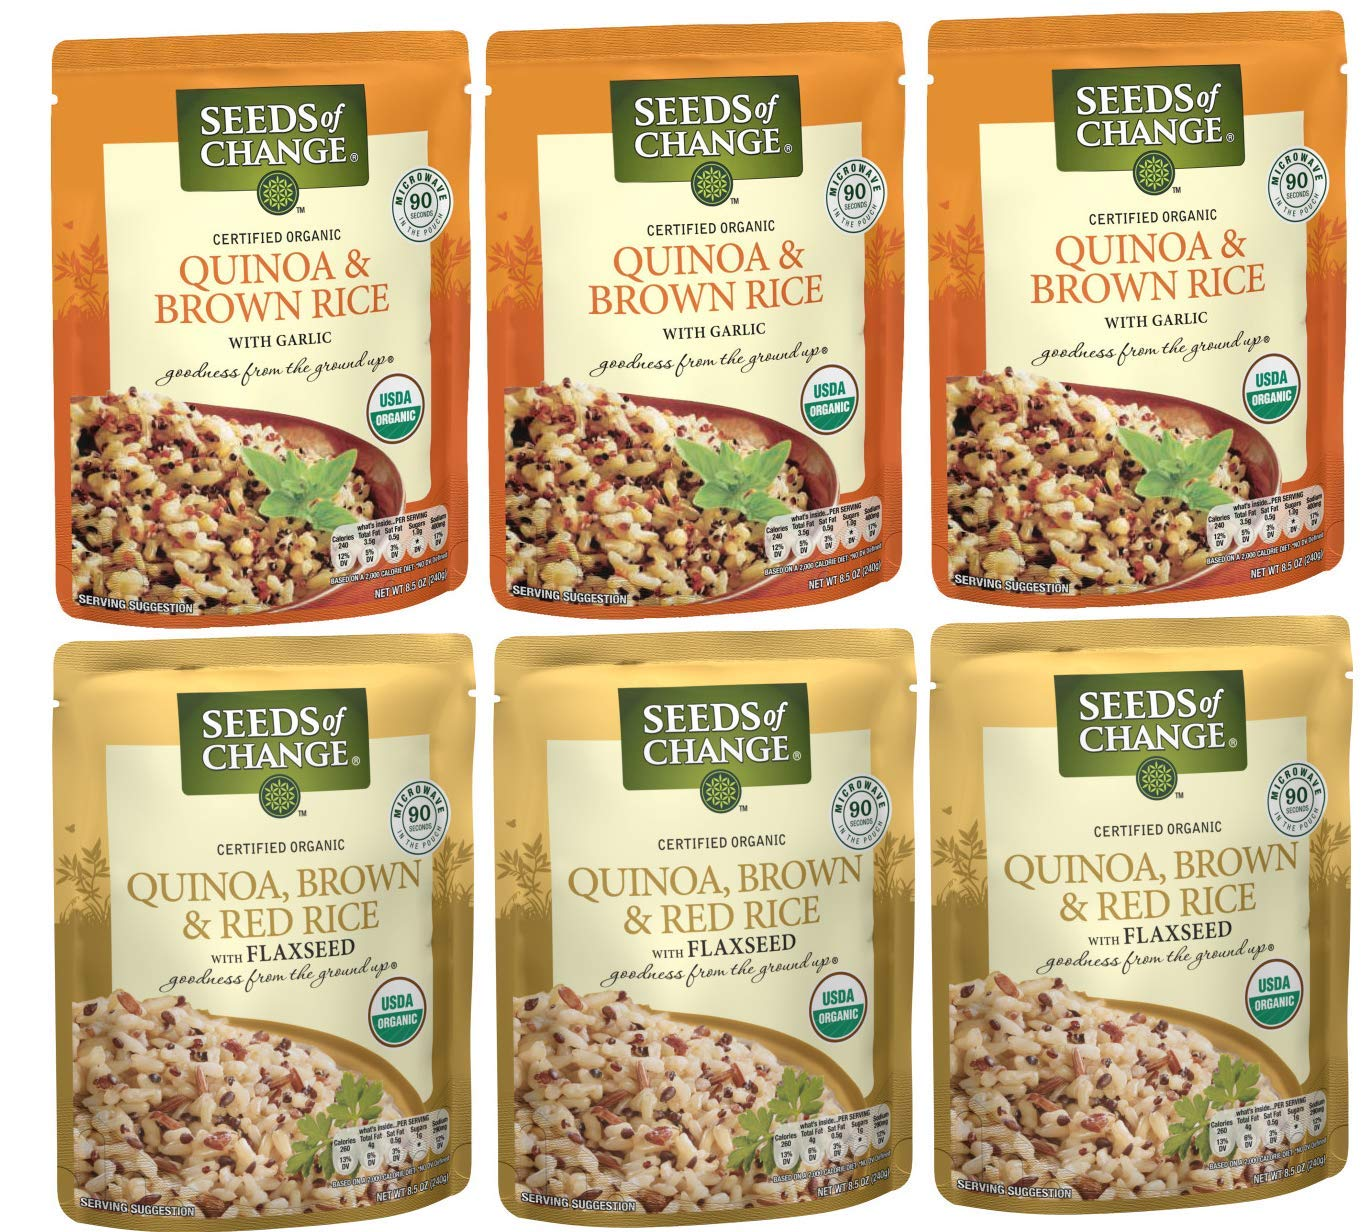 Seeds of Change Organic Rice Variety Pack, Quinoa Brown Rice & Red Rice with Flaxseed, Ready to Heat, 6 Count (Pack of 6)